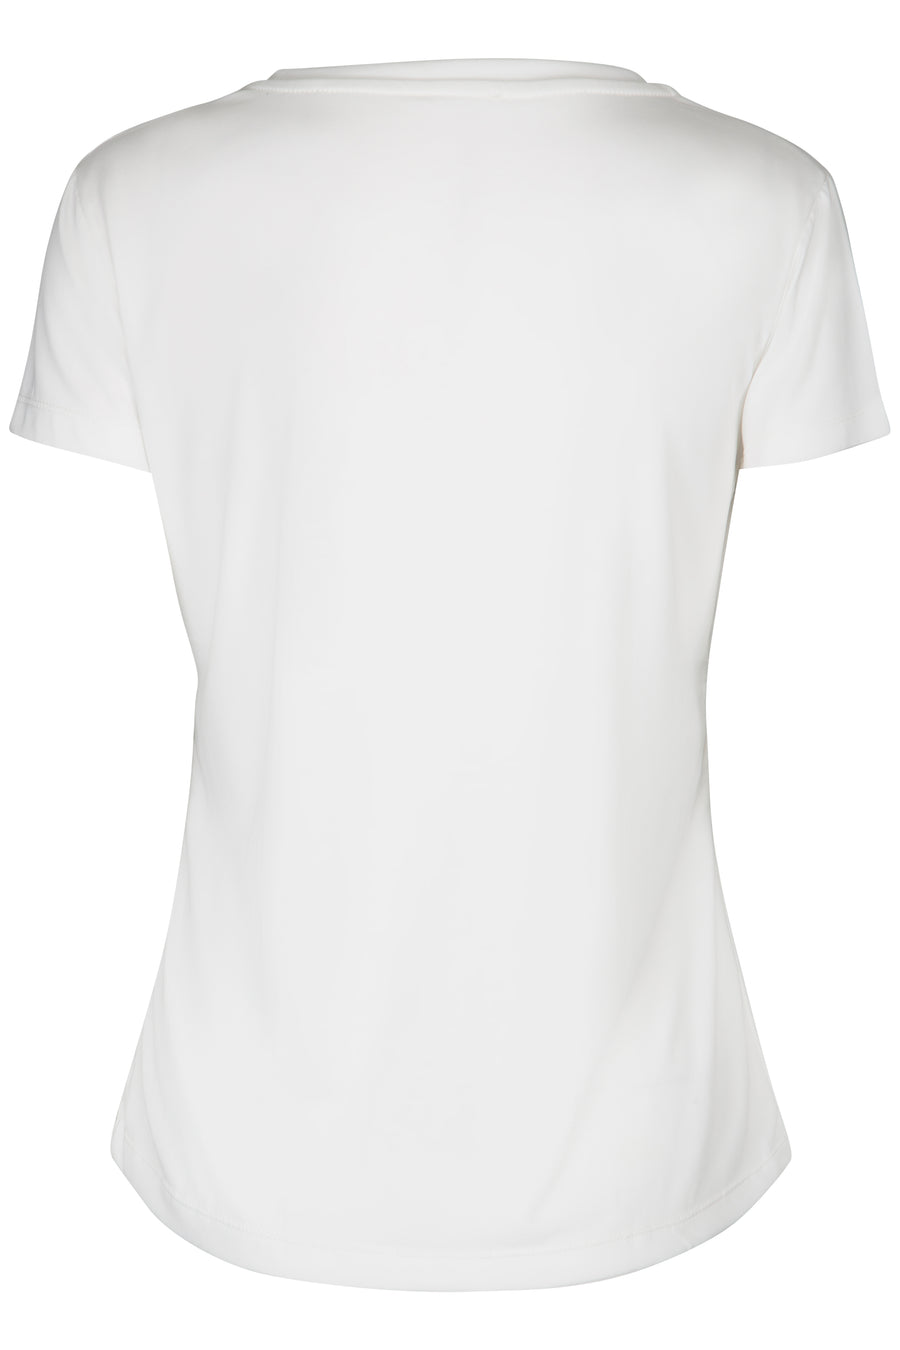 Off white v neck t'shirt ladies with woman print artwork